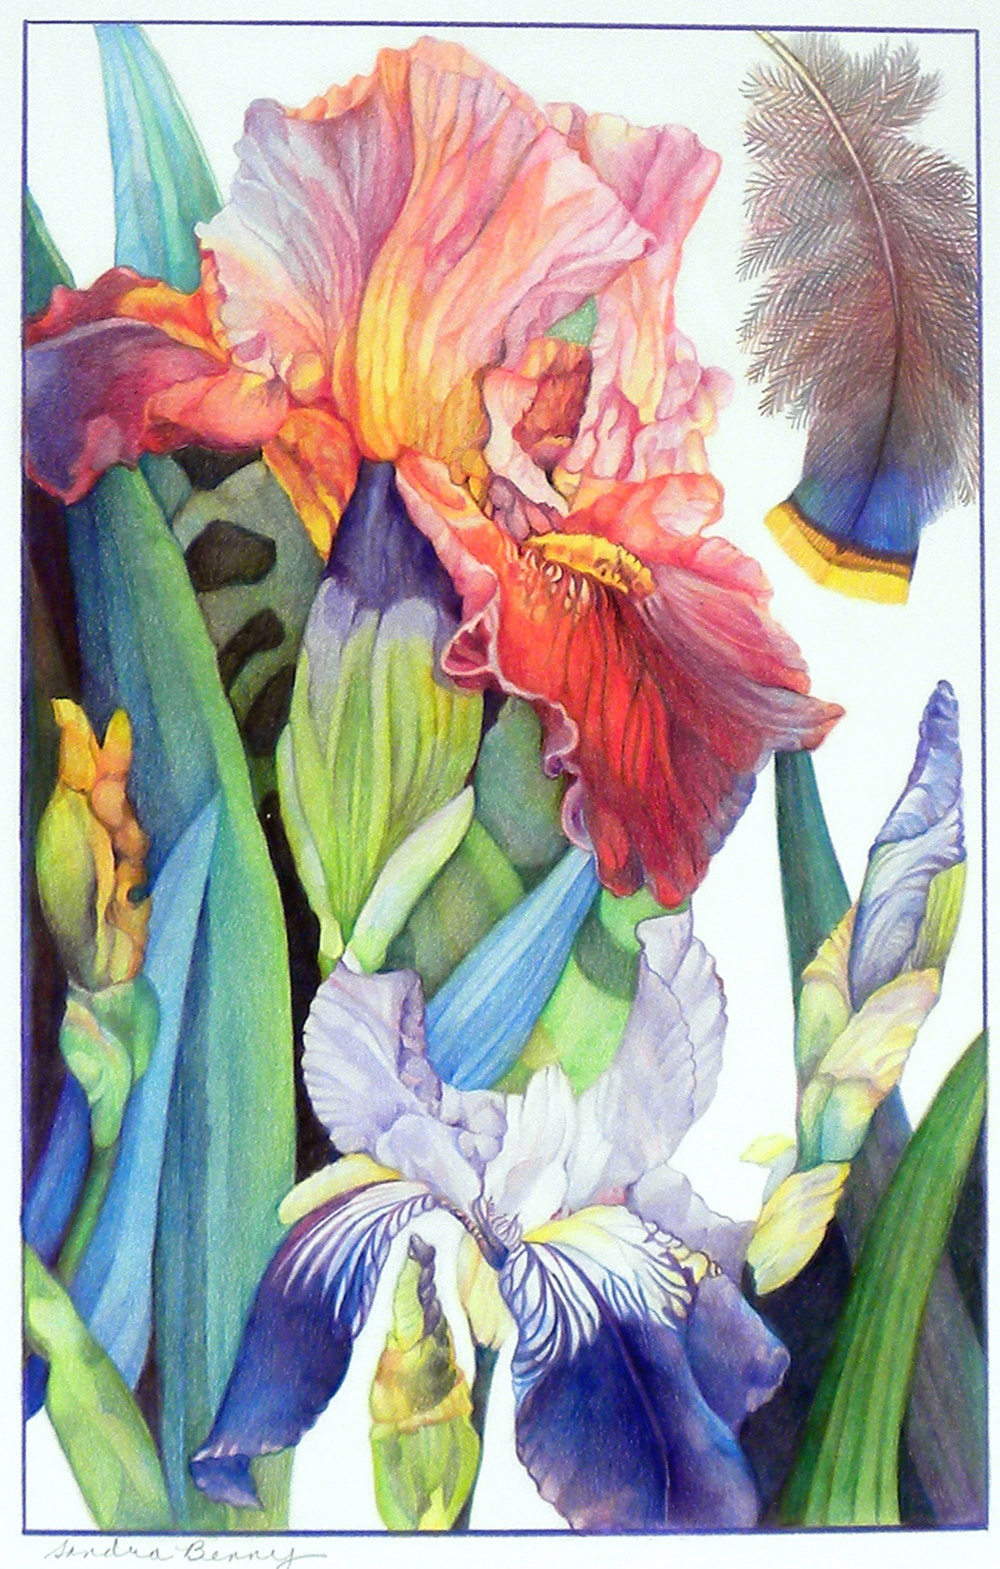 Red-Orange Iris 17 x 11 in. color pencil .jpg